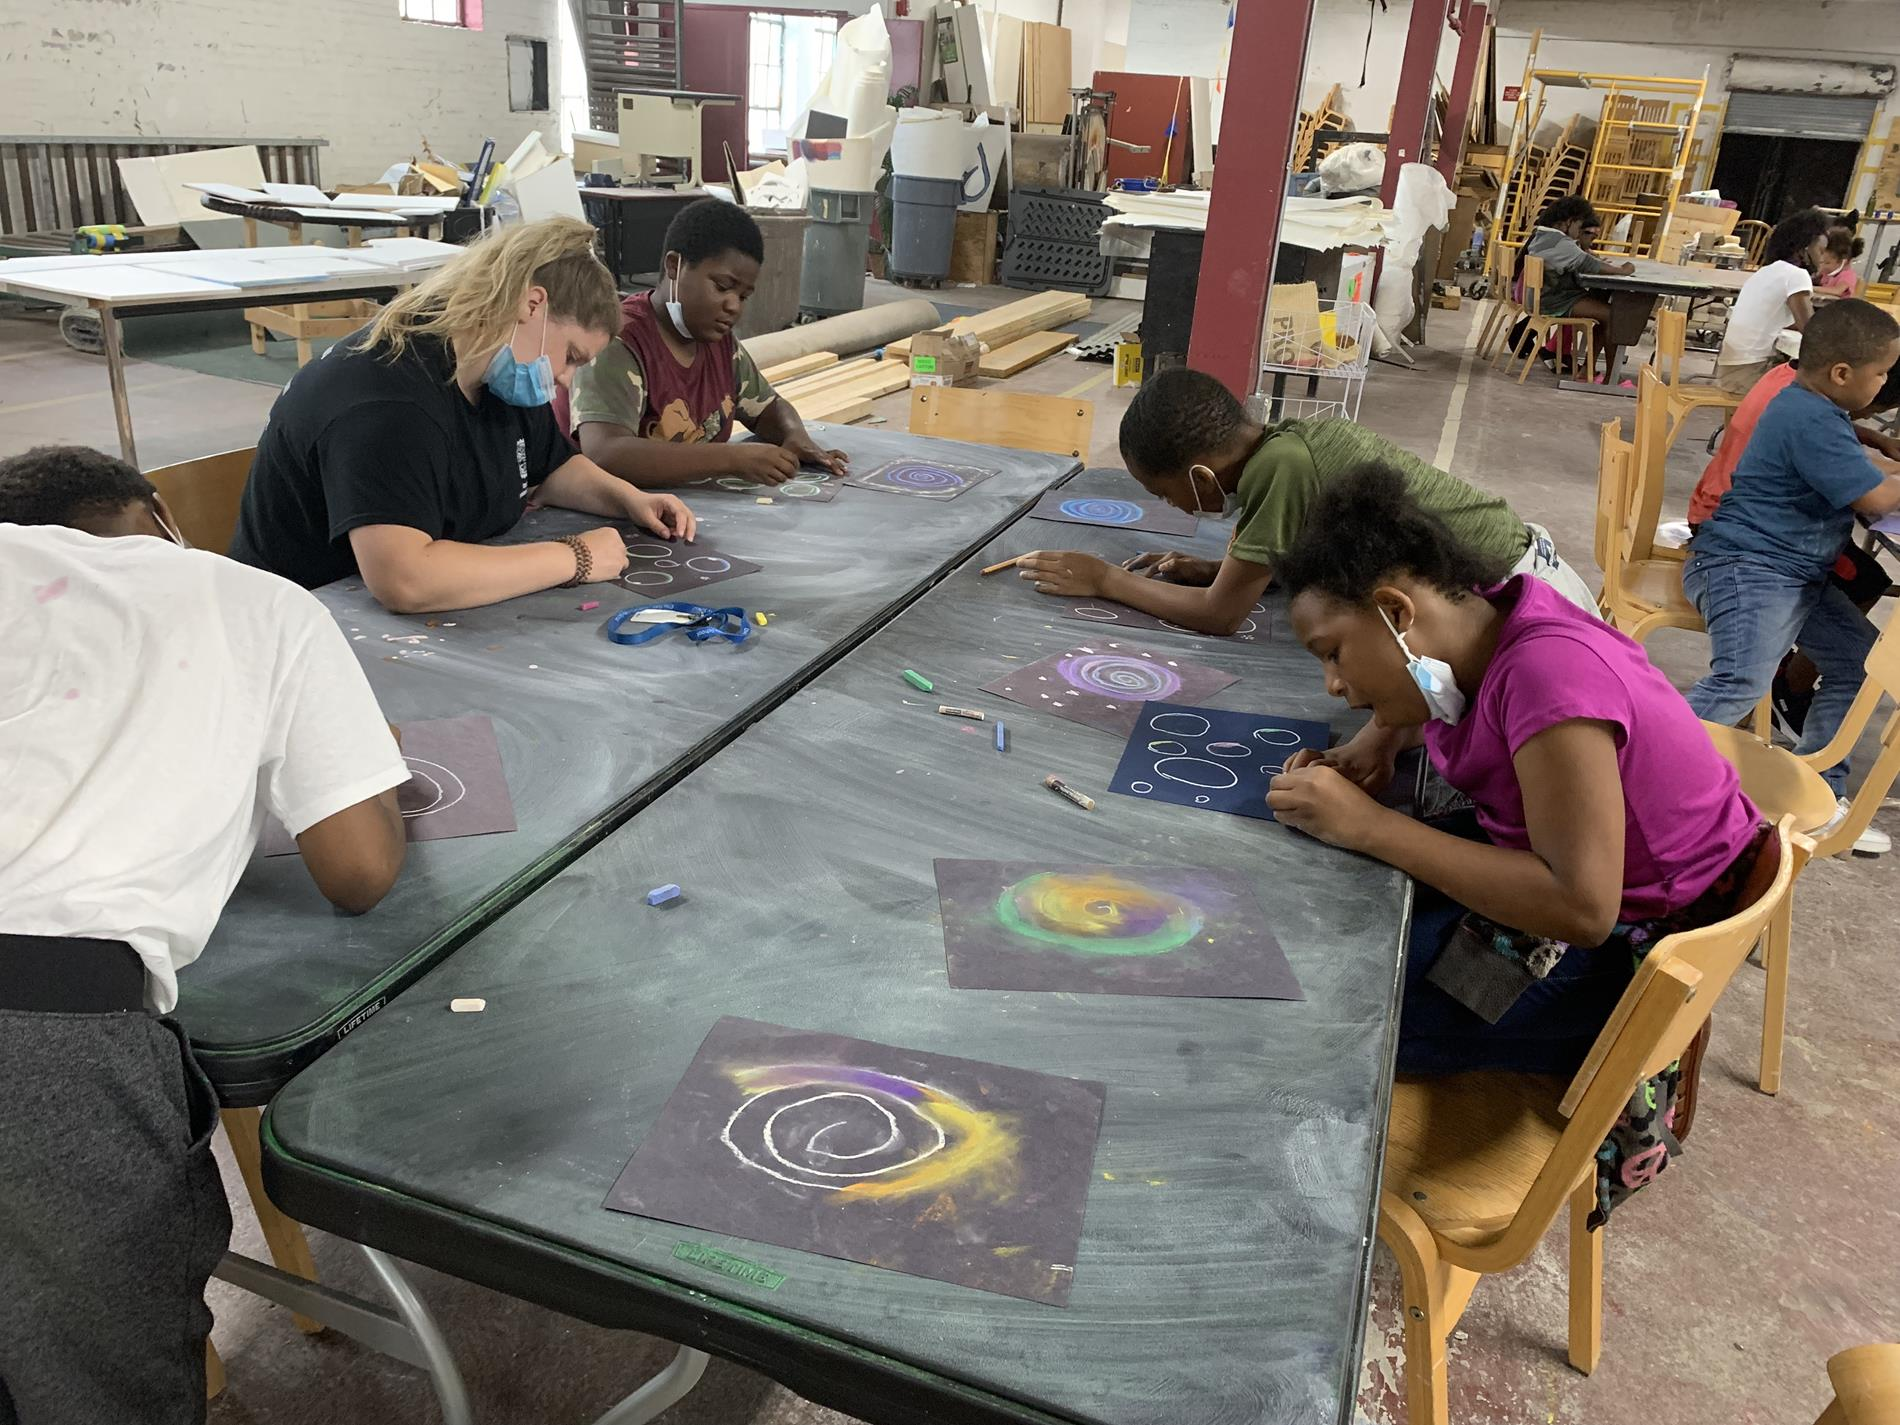 Students working on artwork